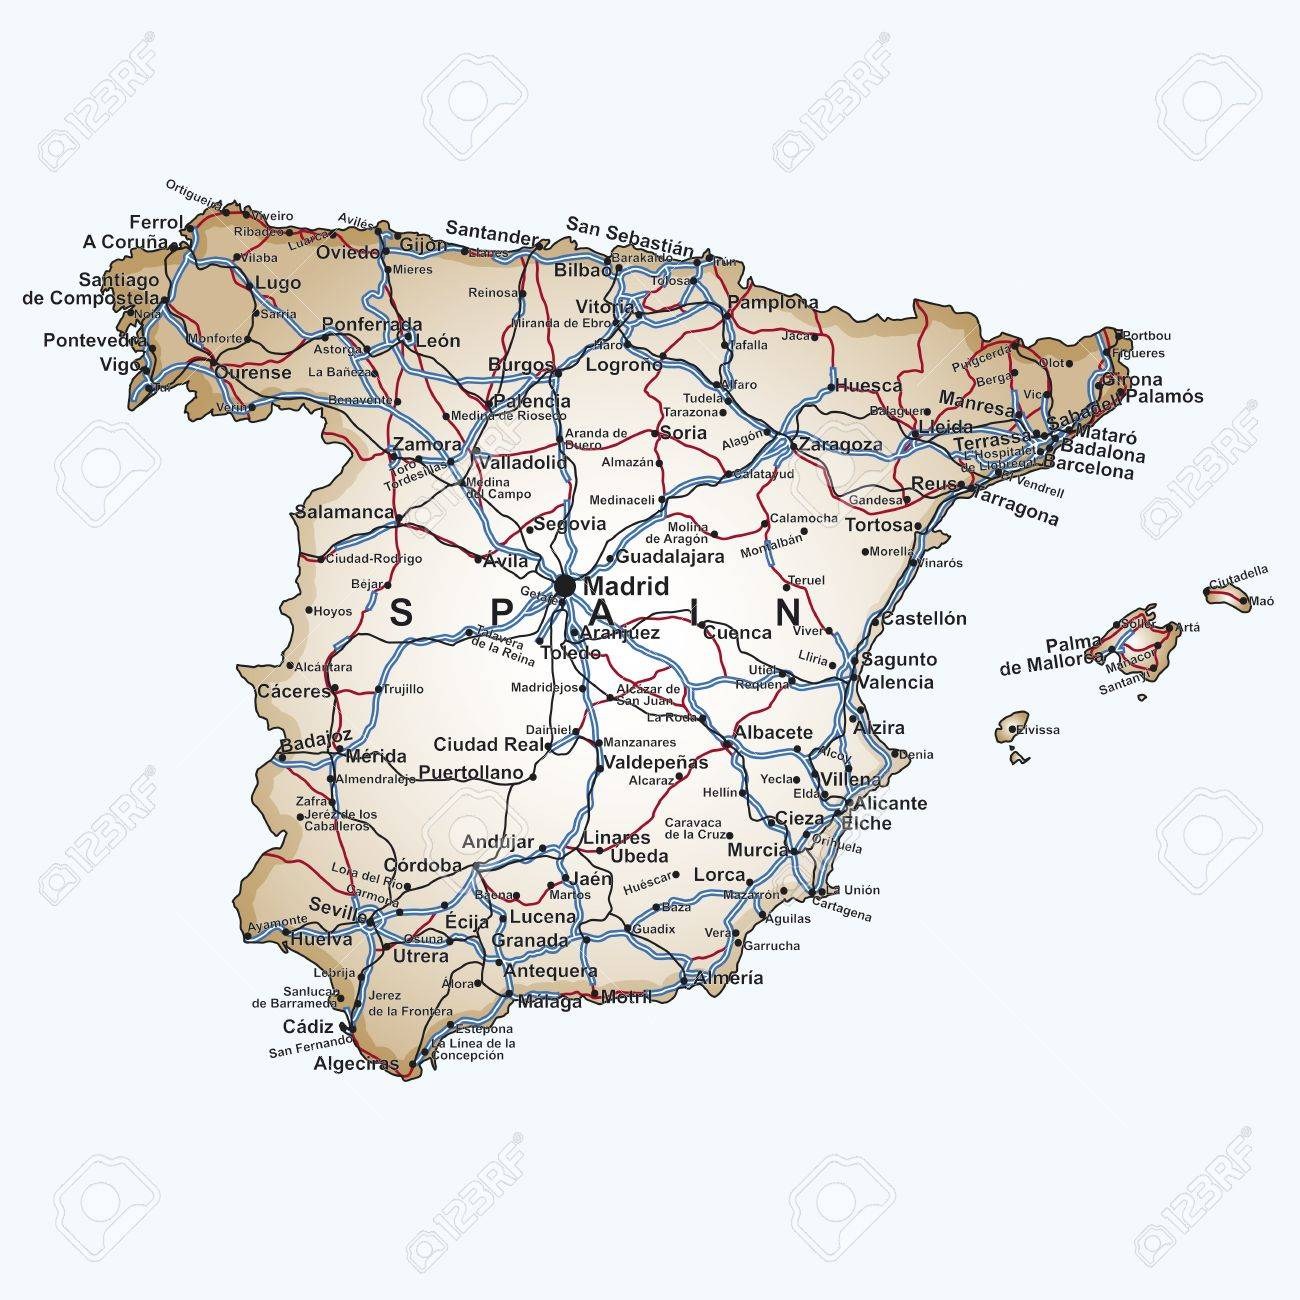 Road Map Of Spain With The Main Cities And Towns Highways And